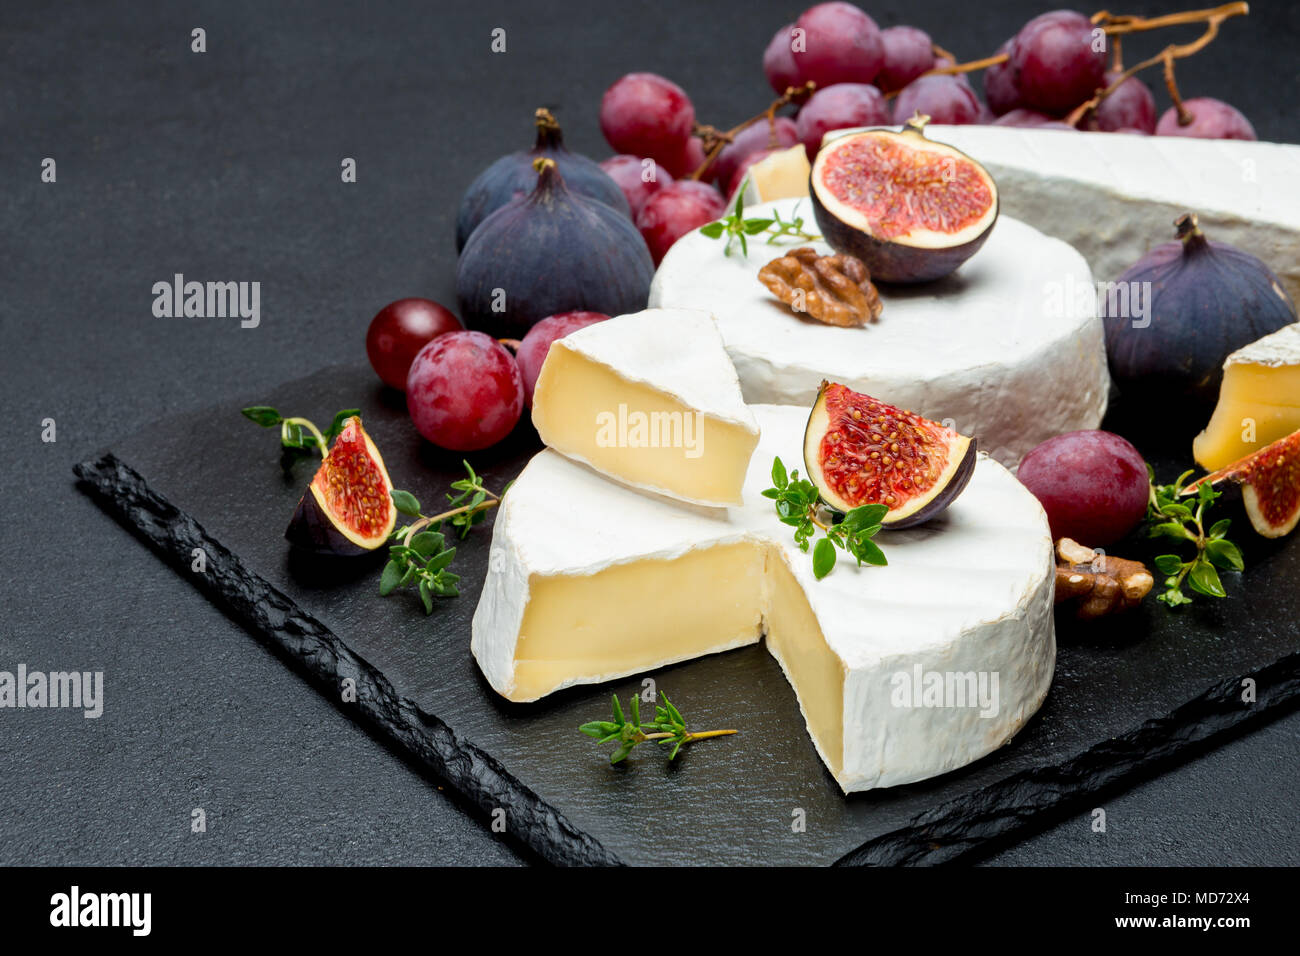 Camembert cheese and cut a slice on stone serving board - Stock Image